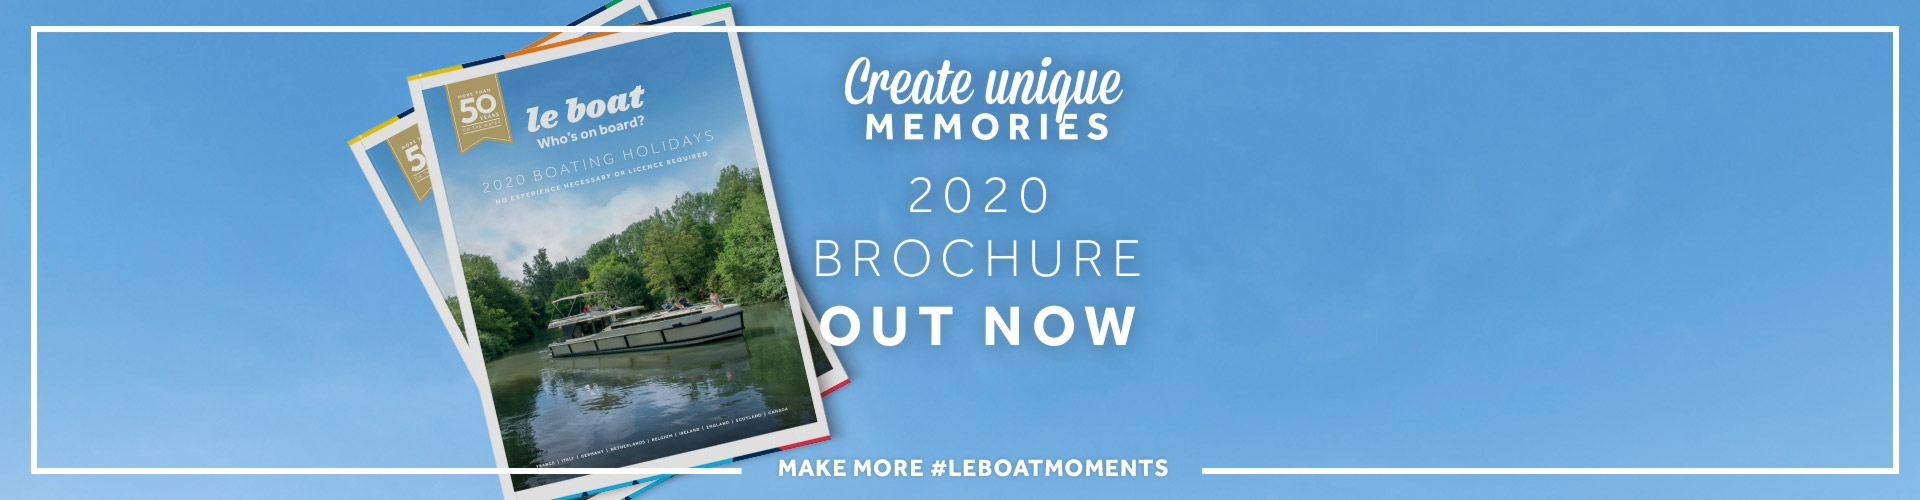 Le Boat - download your 2020 brochure today